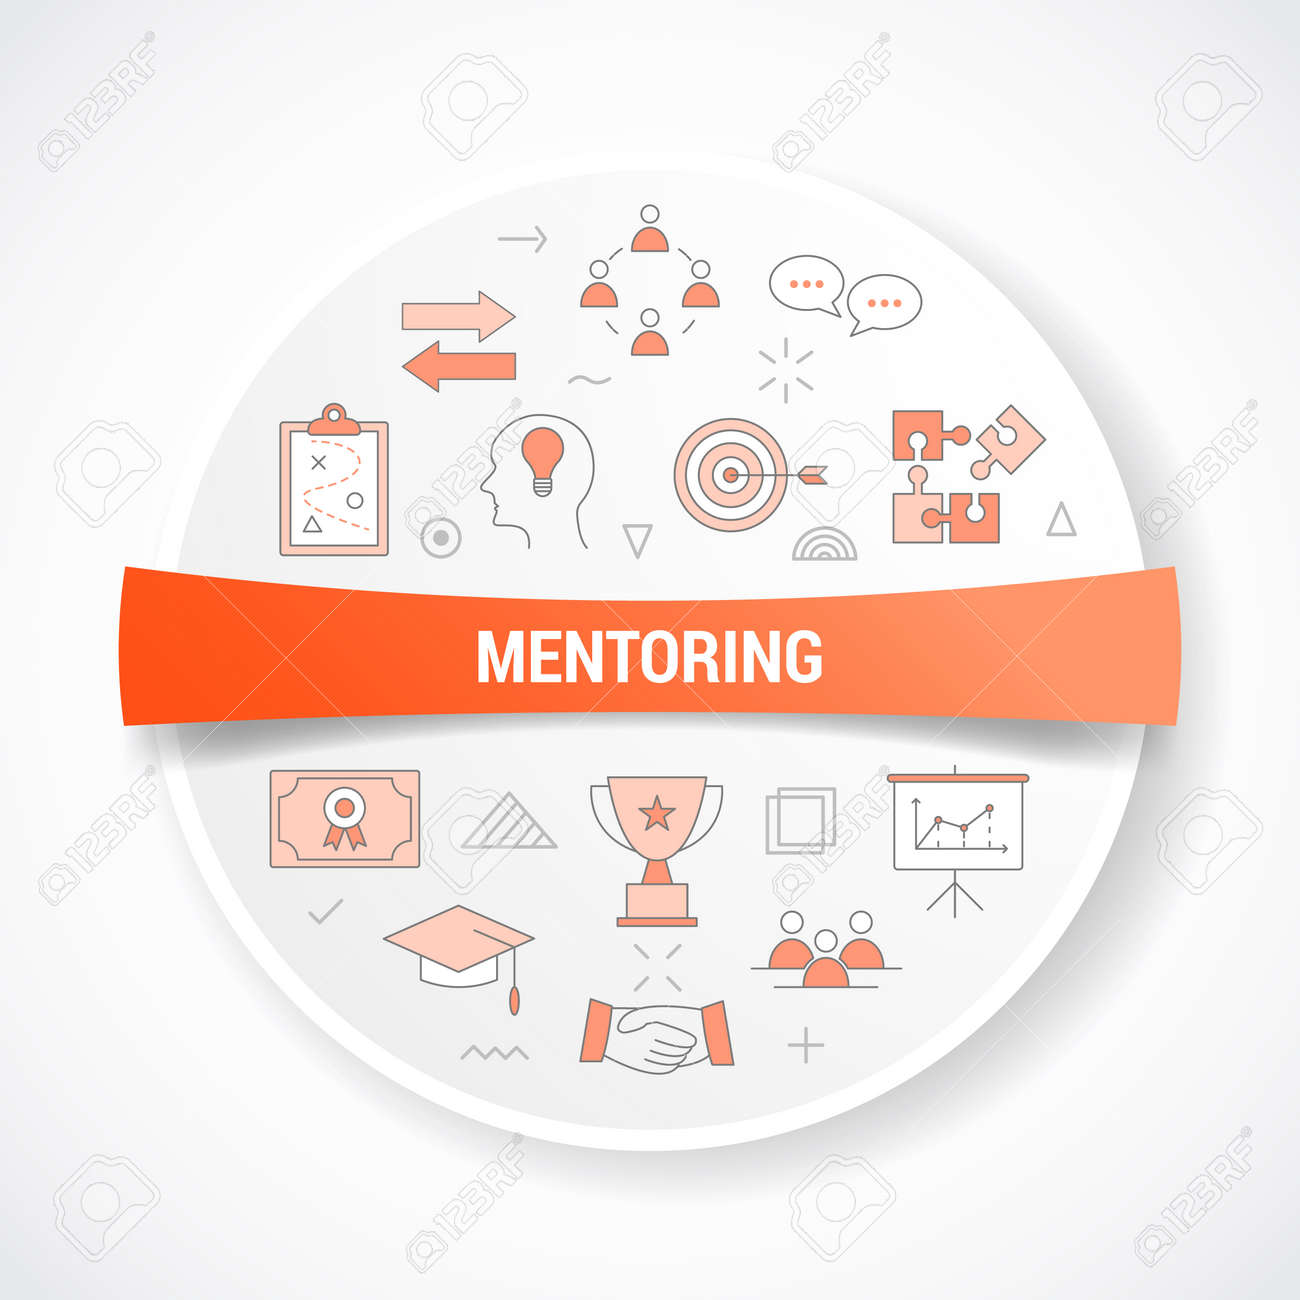 mentoring concept with icon concept with round or circle shape vector illustration - 166633601